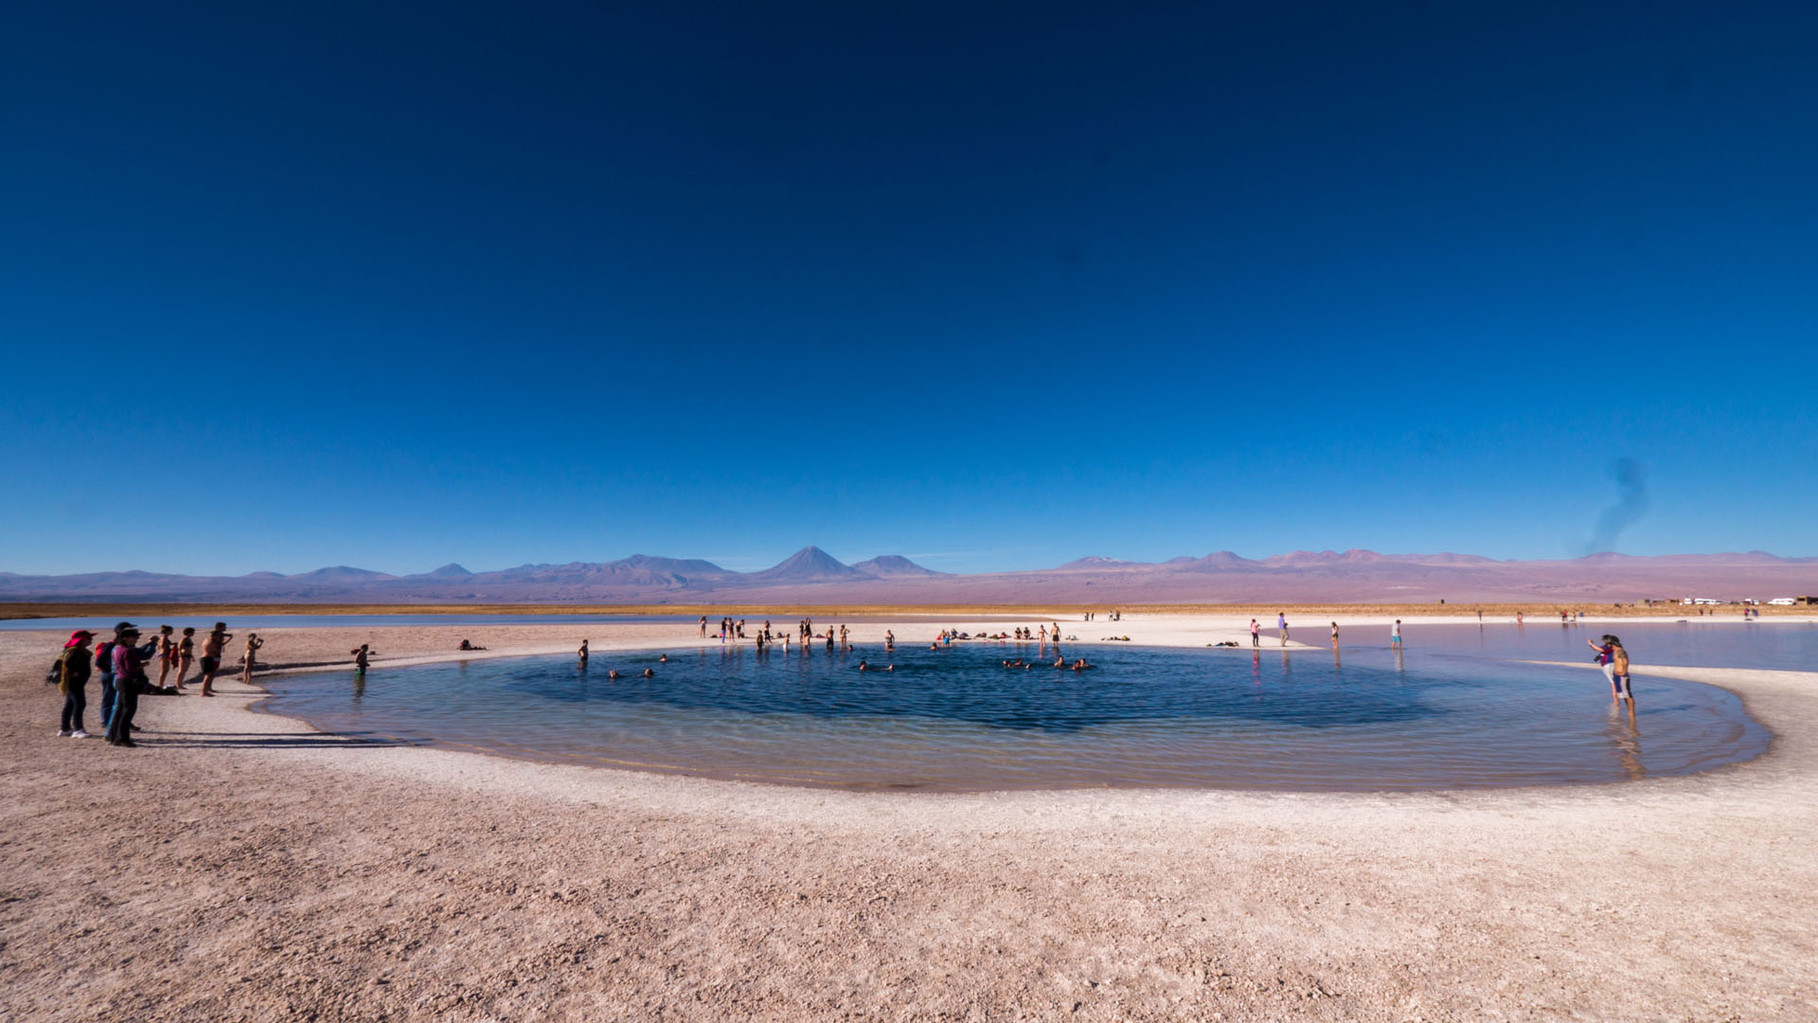 Laguna Cejar (extremely saturated saltwater, similar to dead sea), near San Pedro de Atacama, Chile